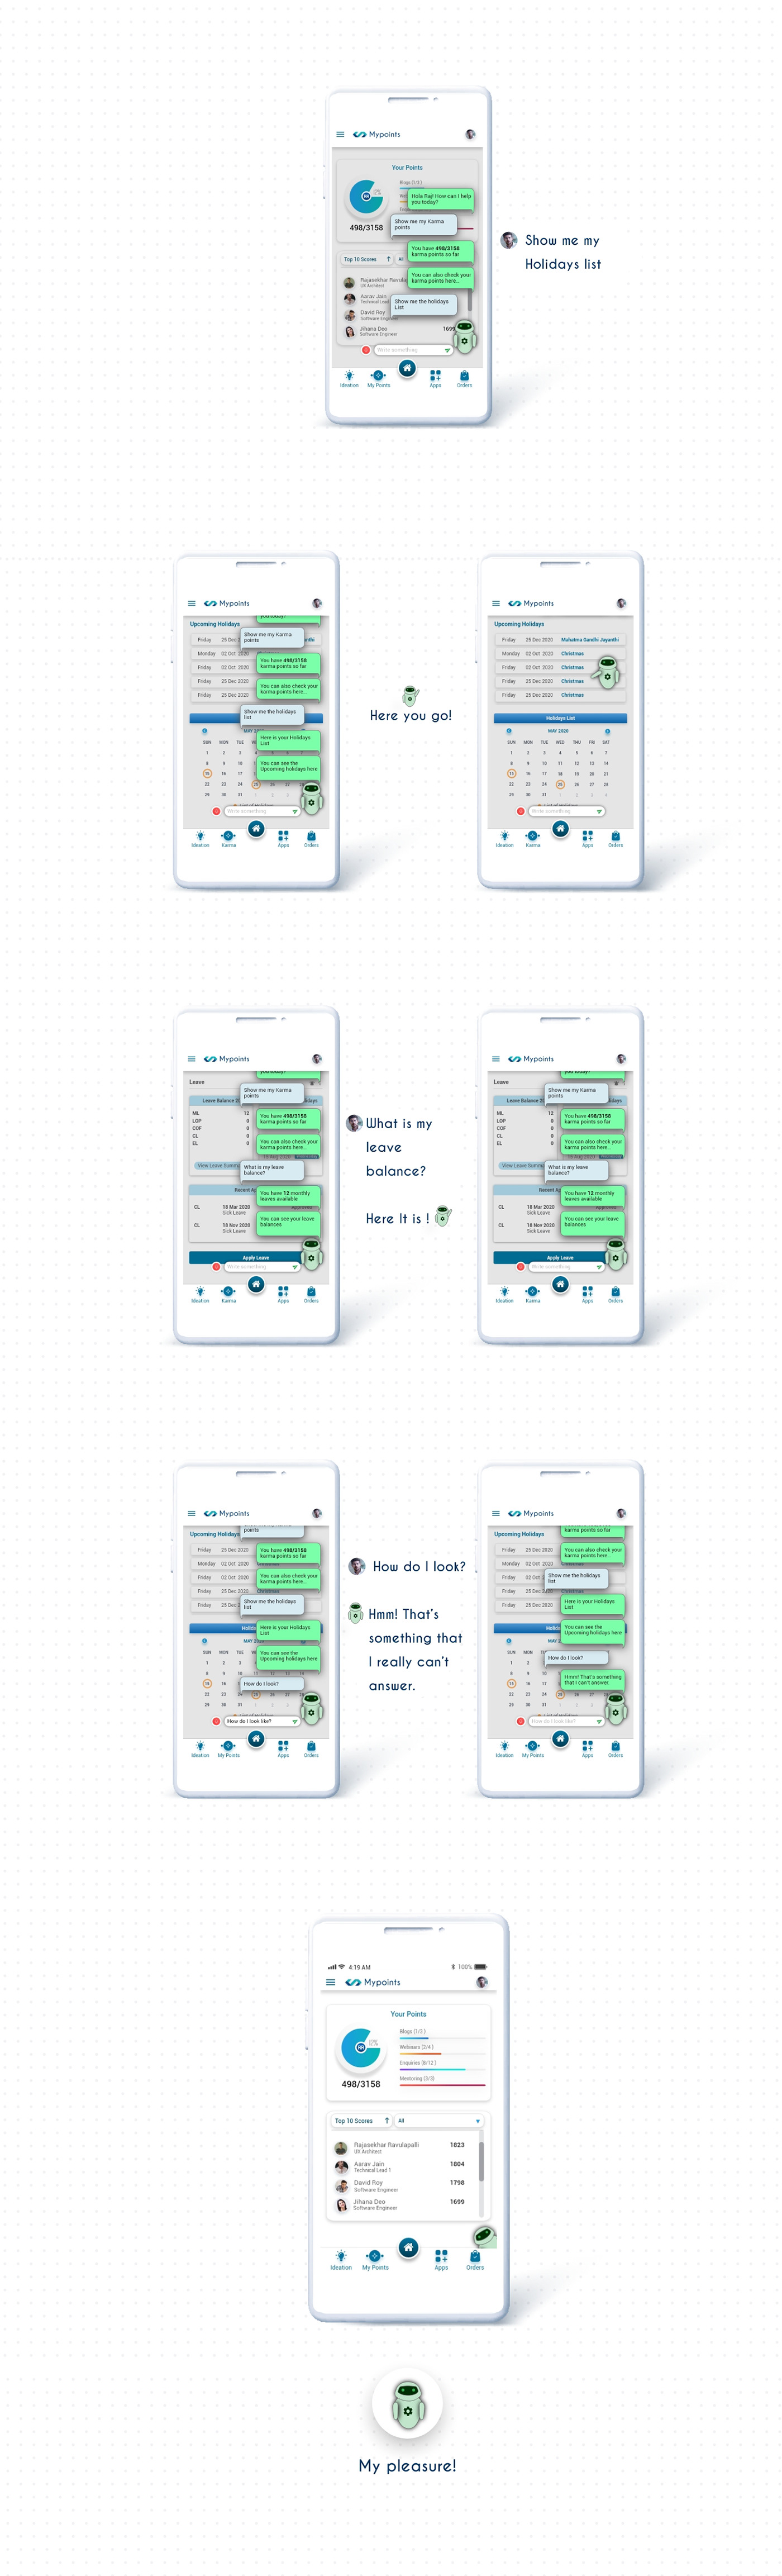 Polle - The Chatbot